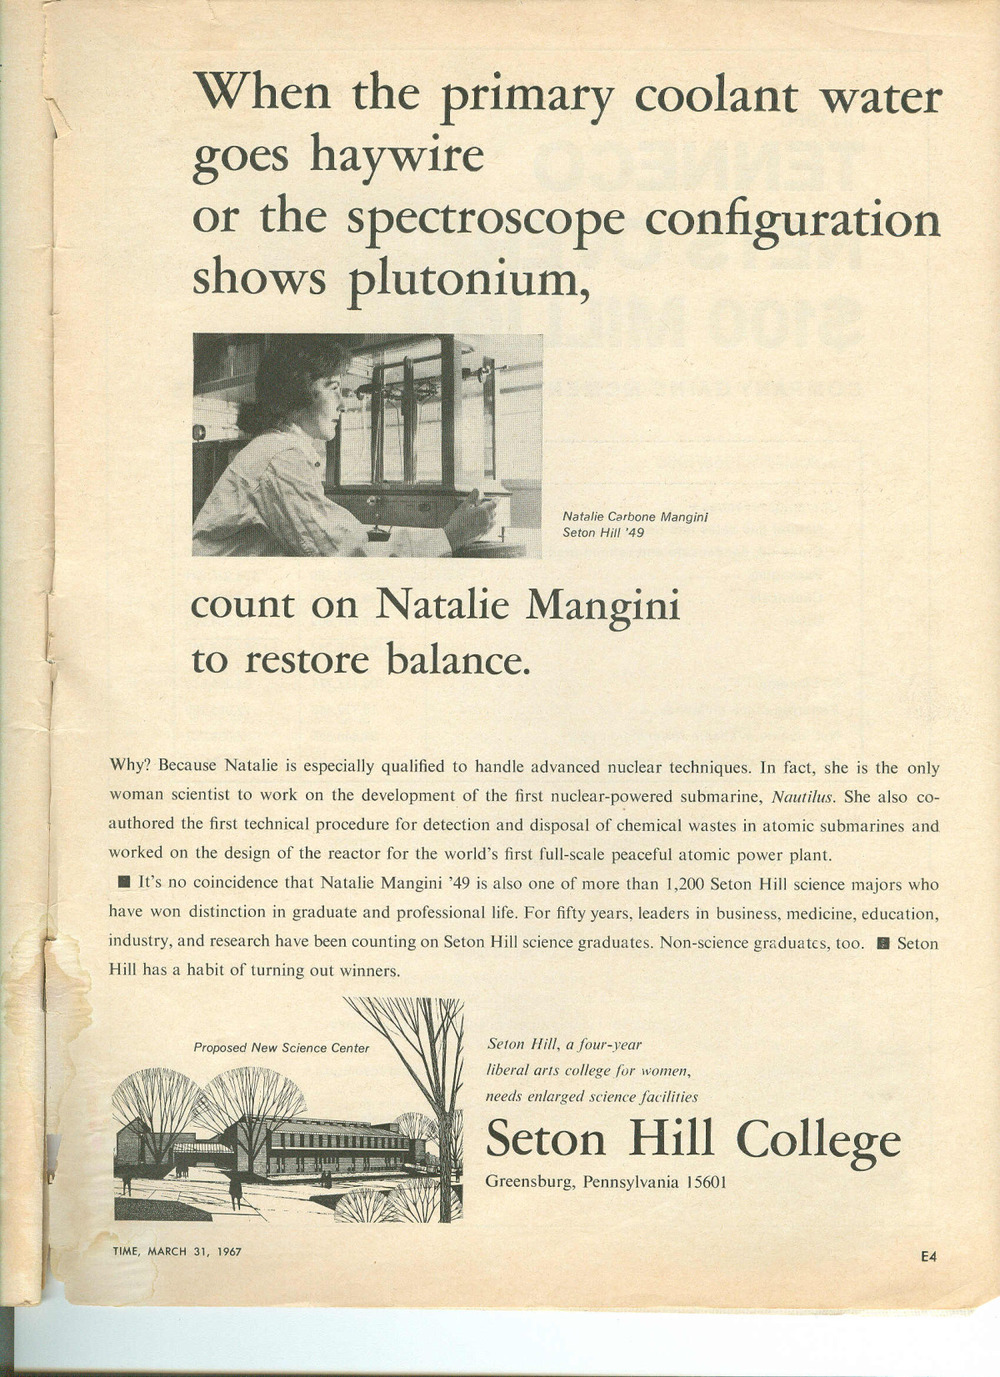 natalie mangini featured in an advertisement for seton hill .jpg